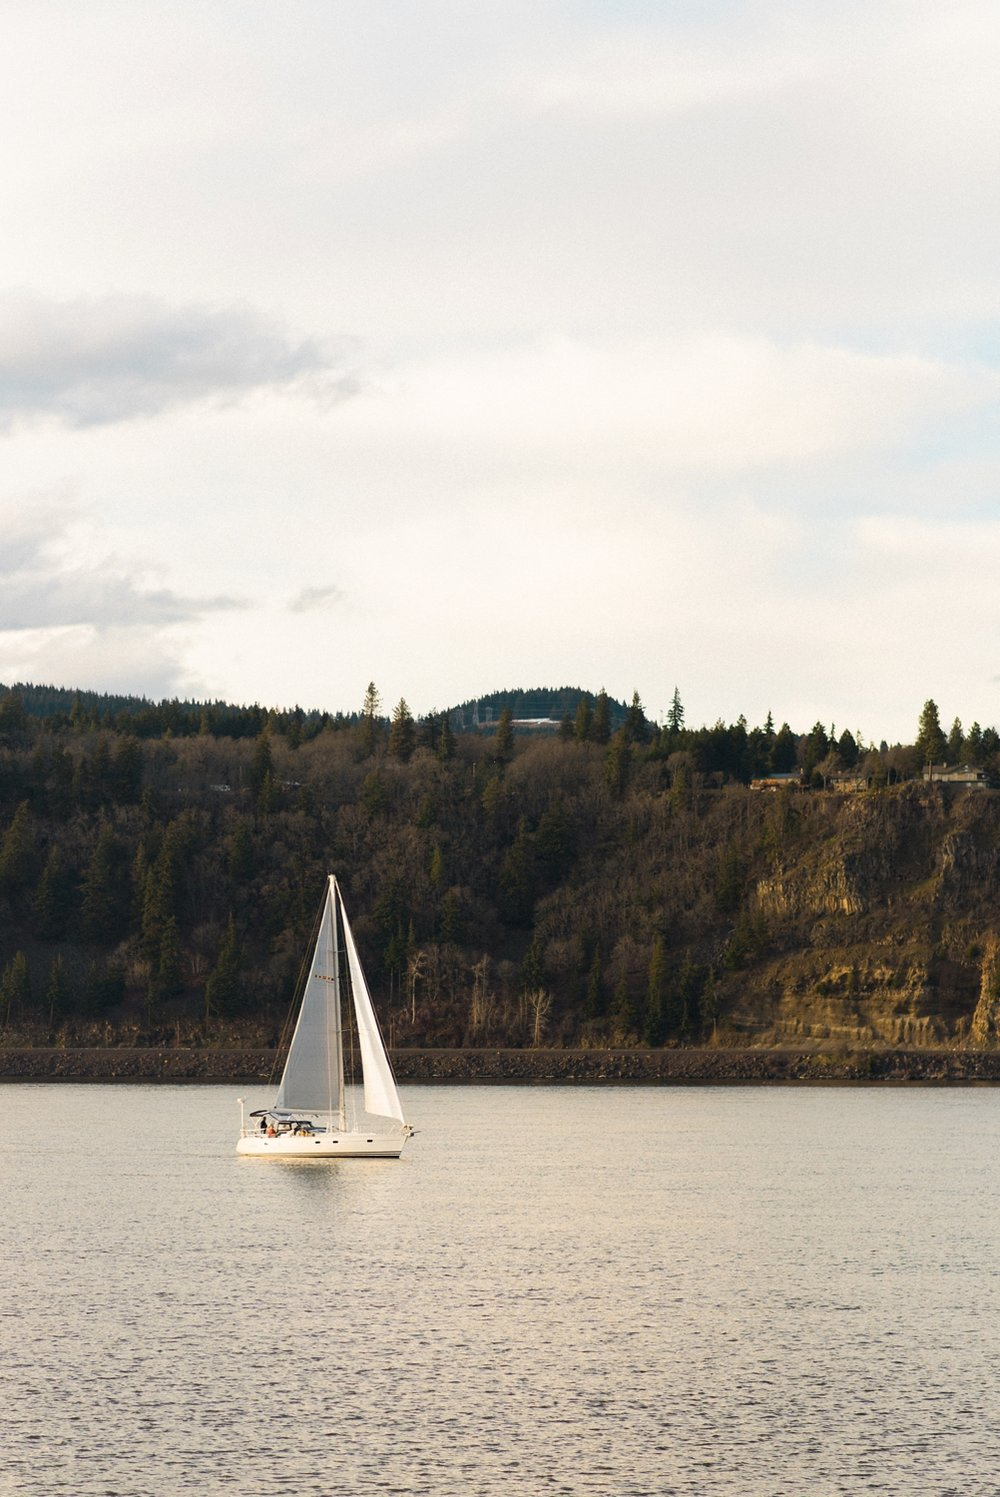 hood-river-maternity-sailboat-columbia-river-gorge-shelley-marie-photo-075_cr.jpg